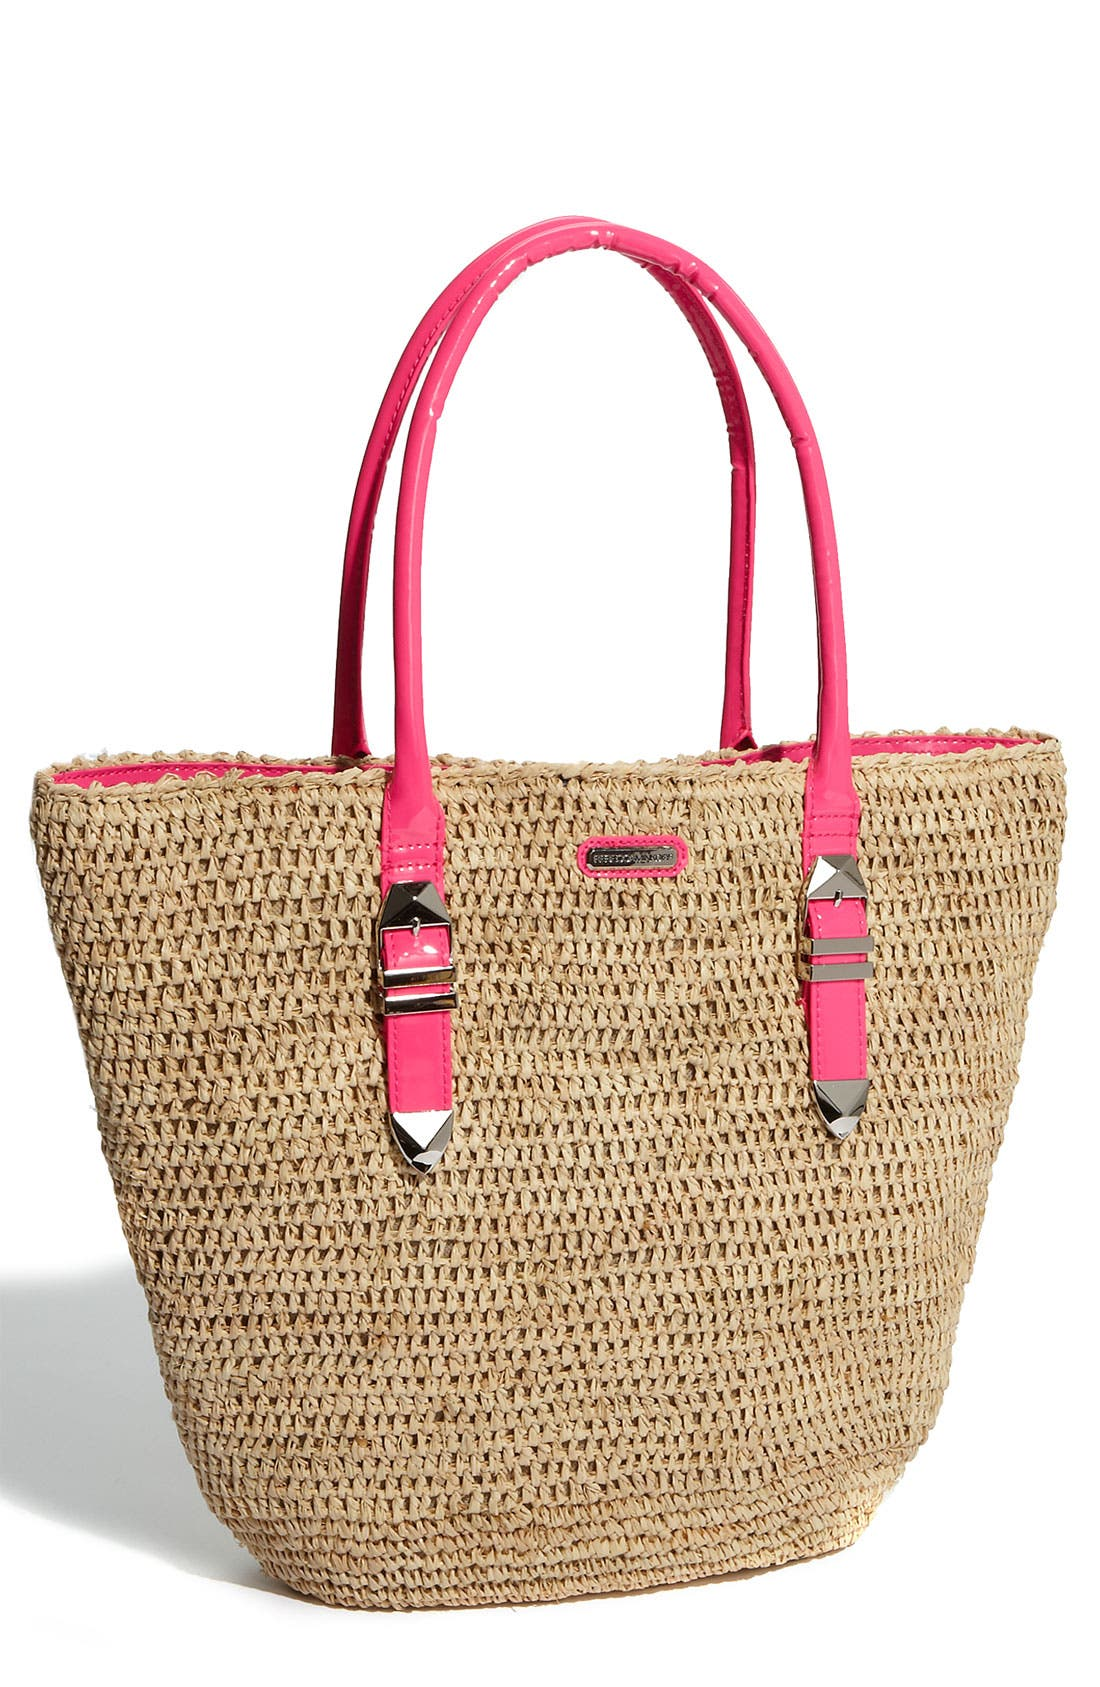 Alternate Image 1 Selected - Rebecca Minkoff 'Boyfriend' Tote